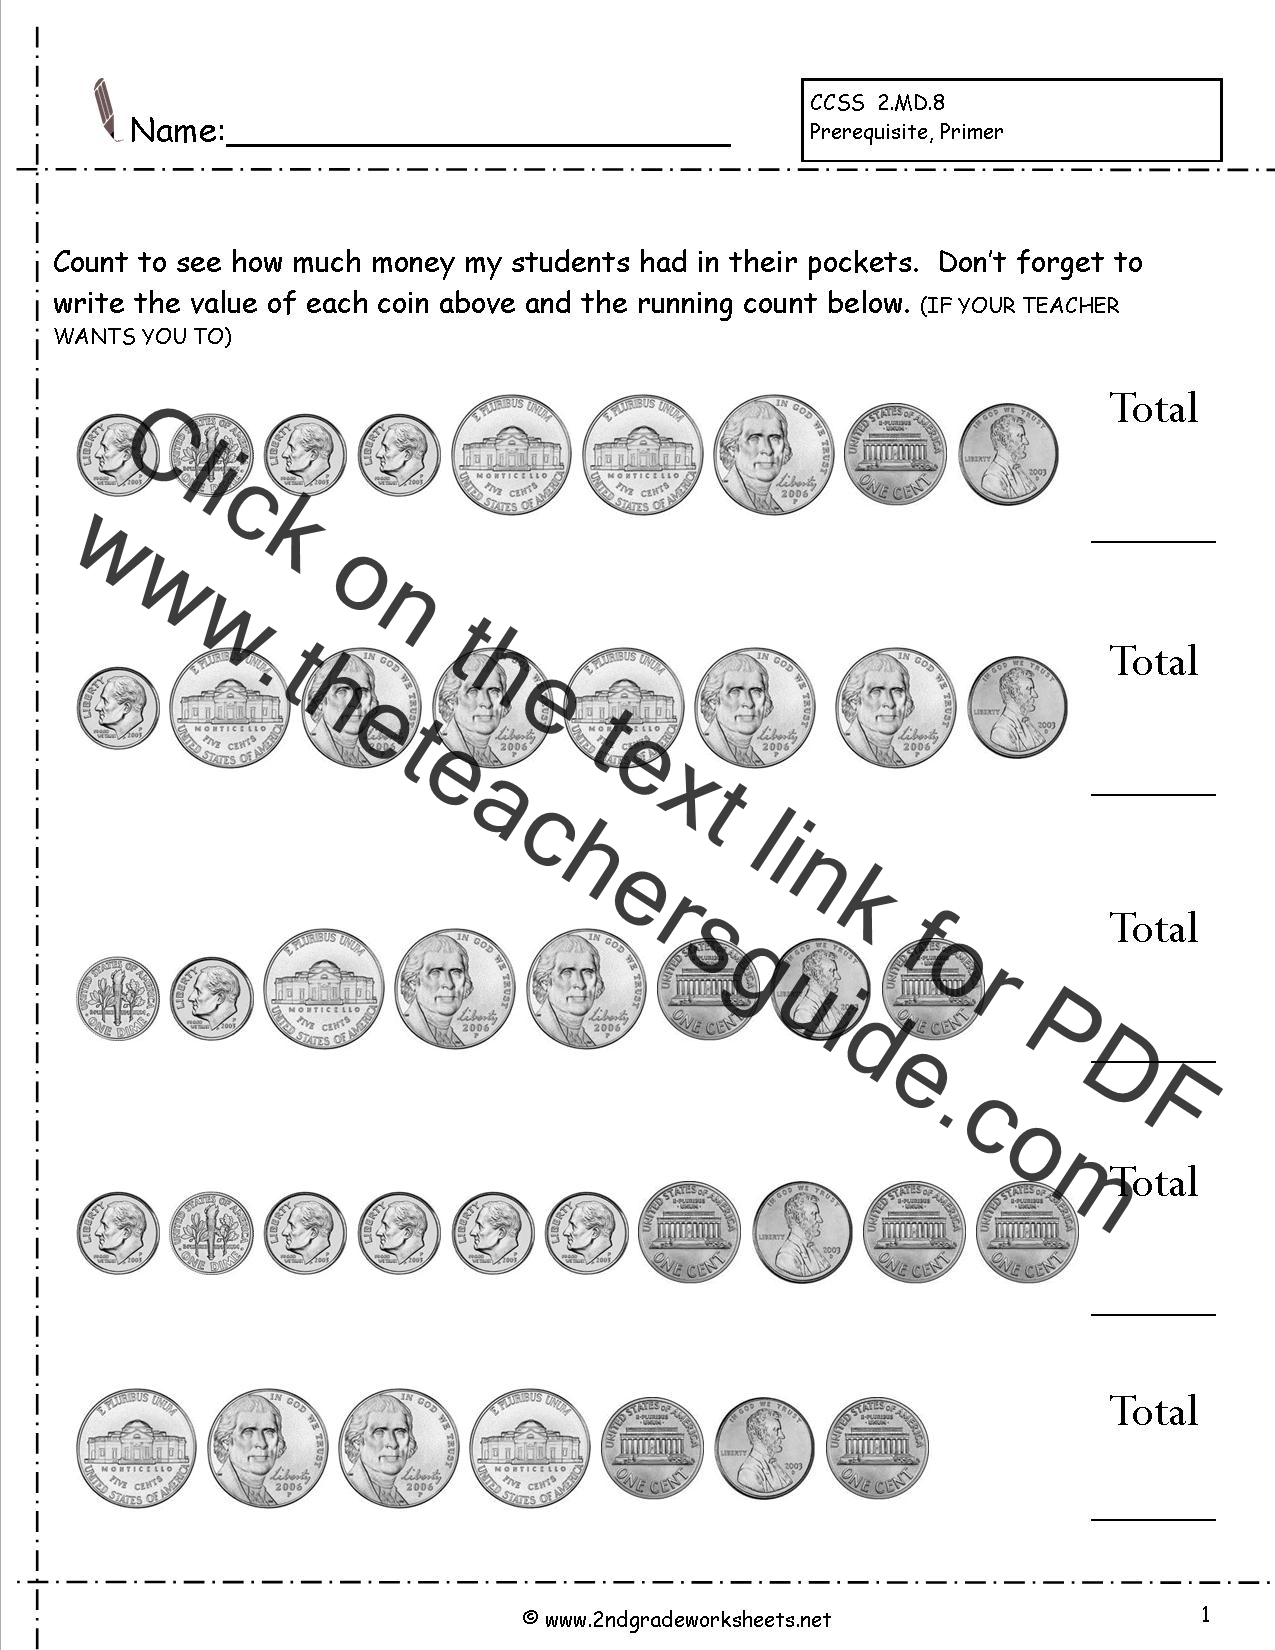 Worksheets Count Money Worksheet counting coins and money worksheets printouts worksheet